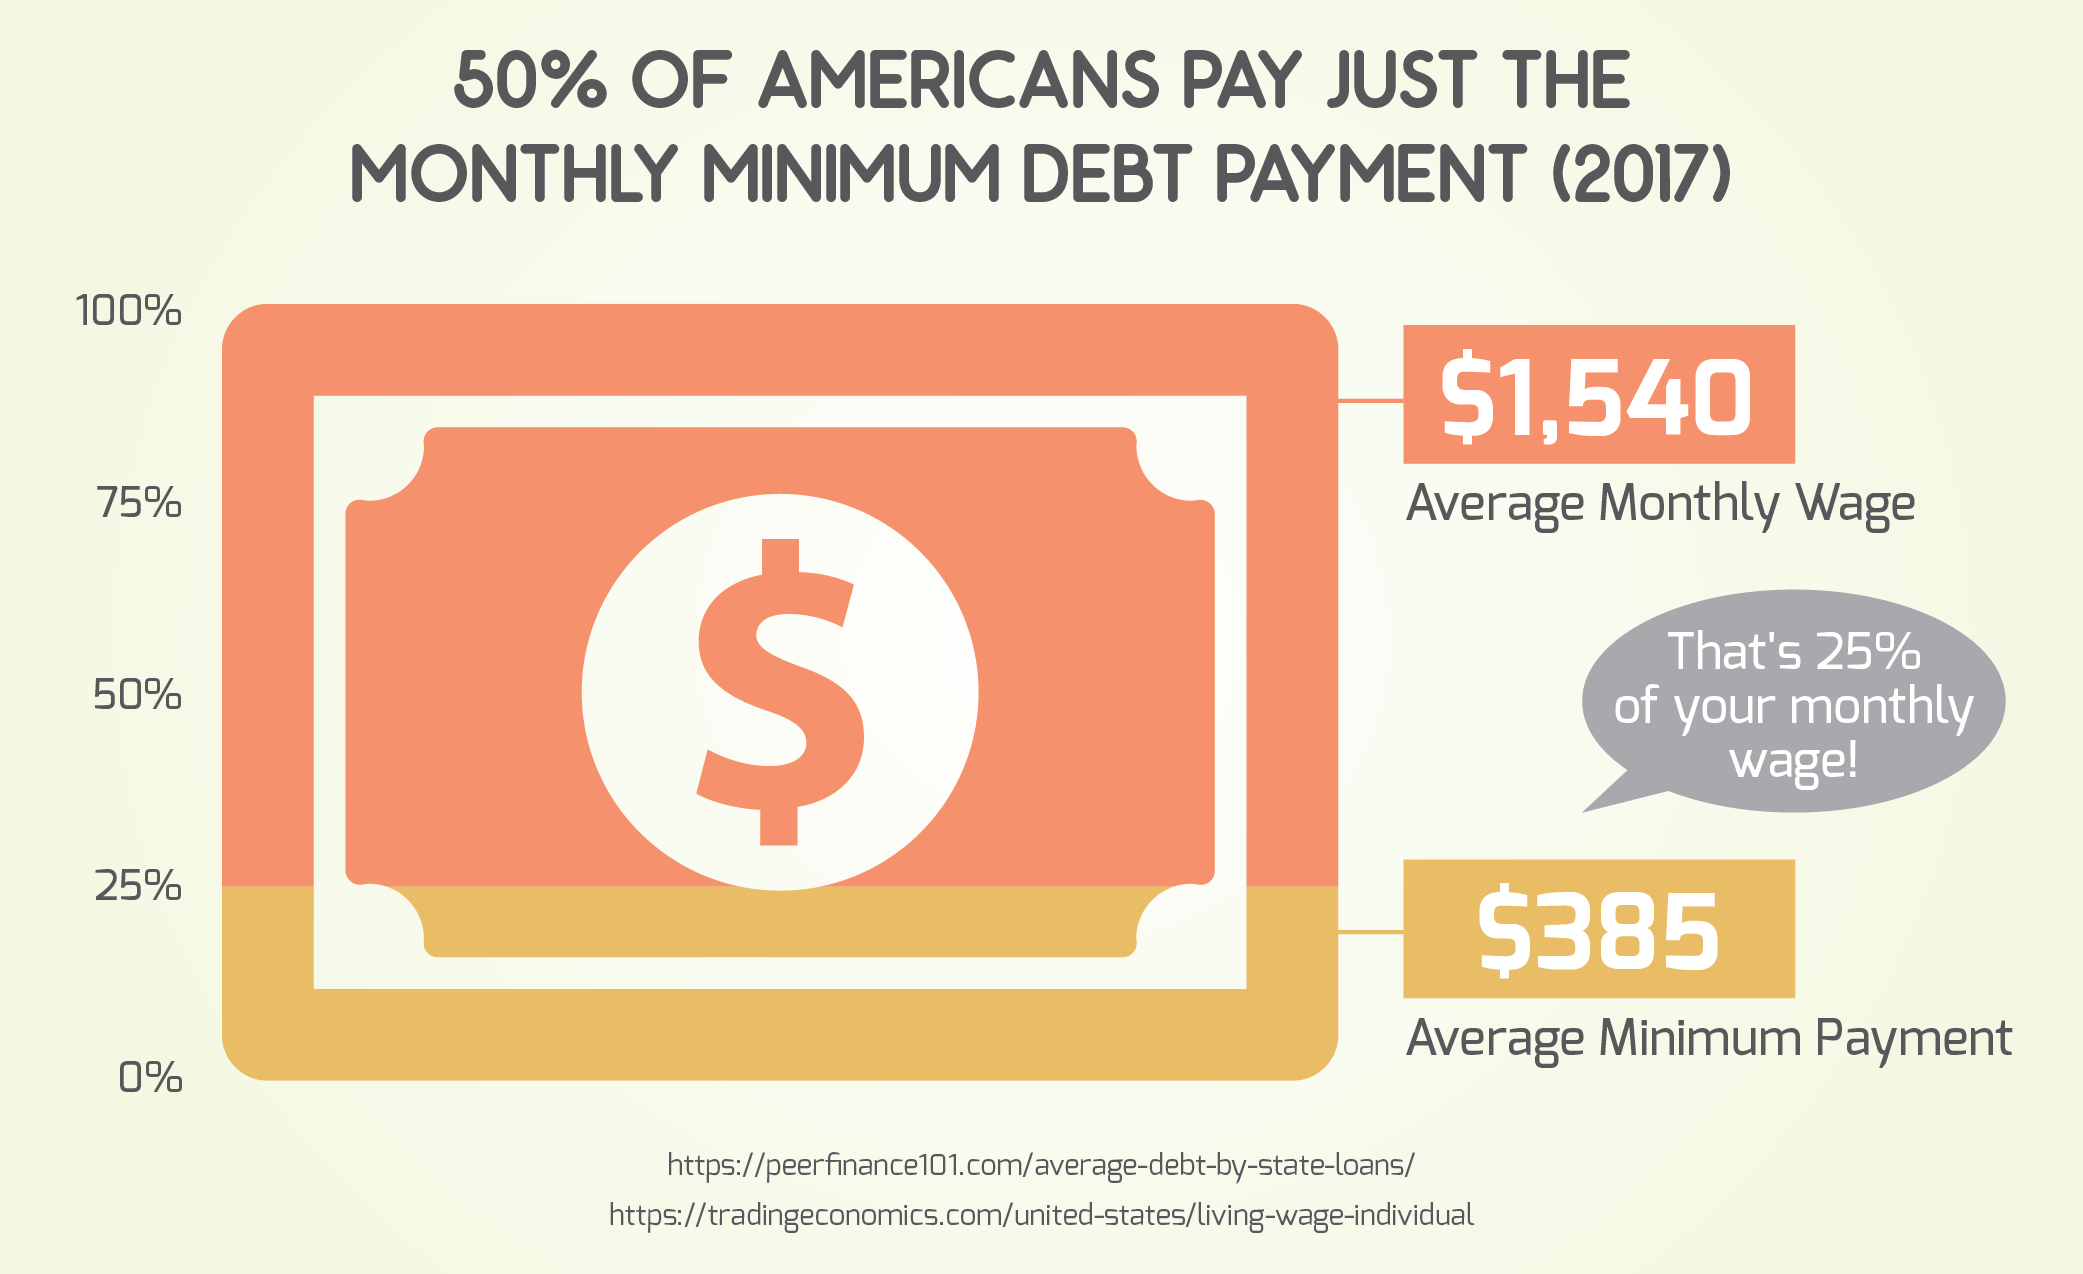 50% of Americans Pay Just the Monthly Minimum Debt Payment (2017)